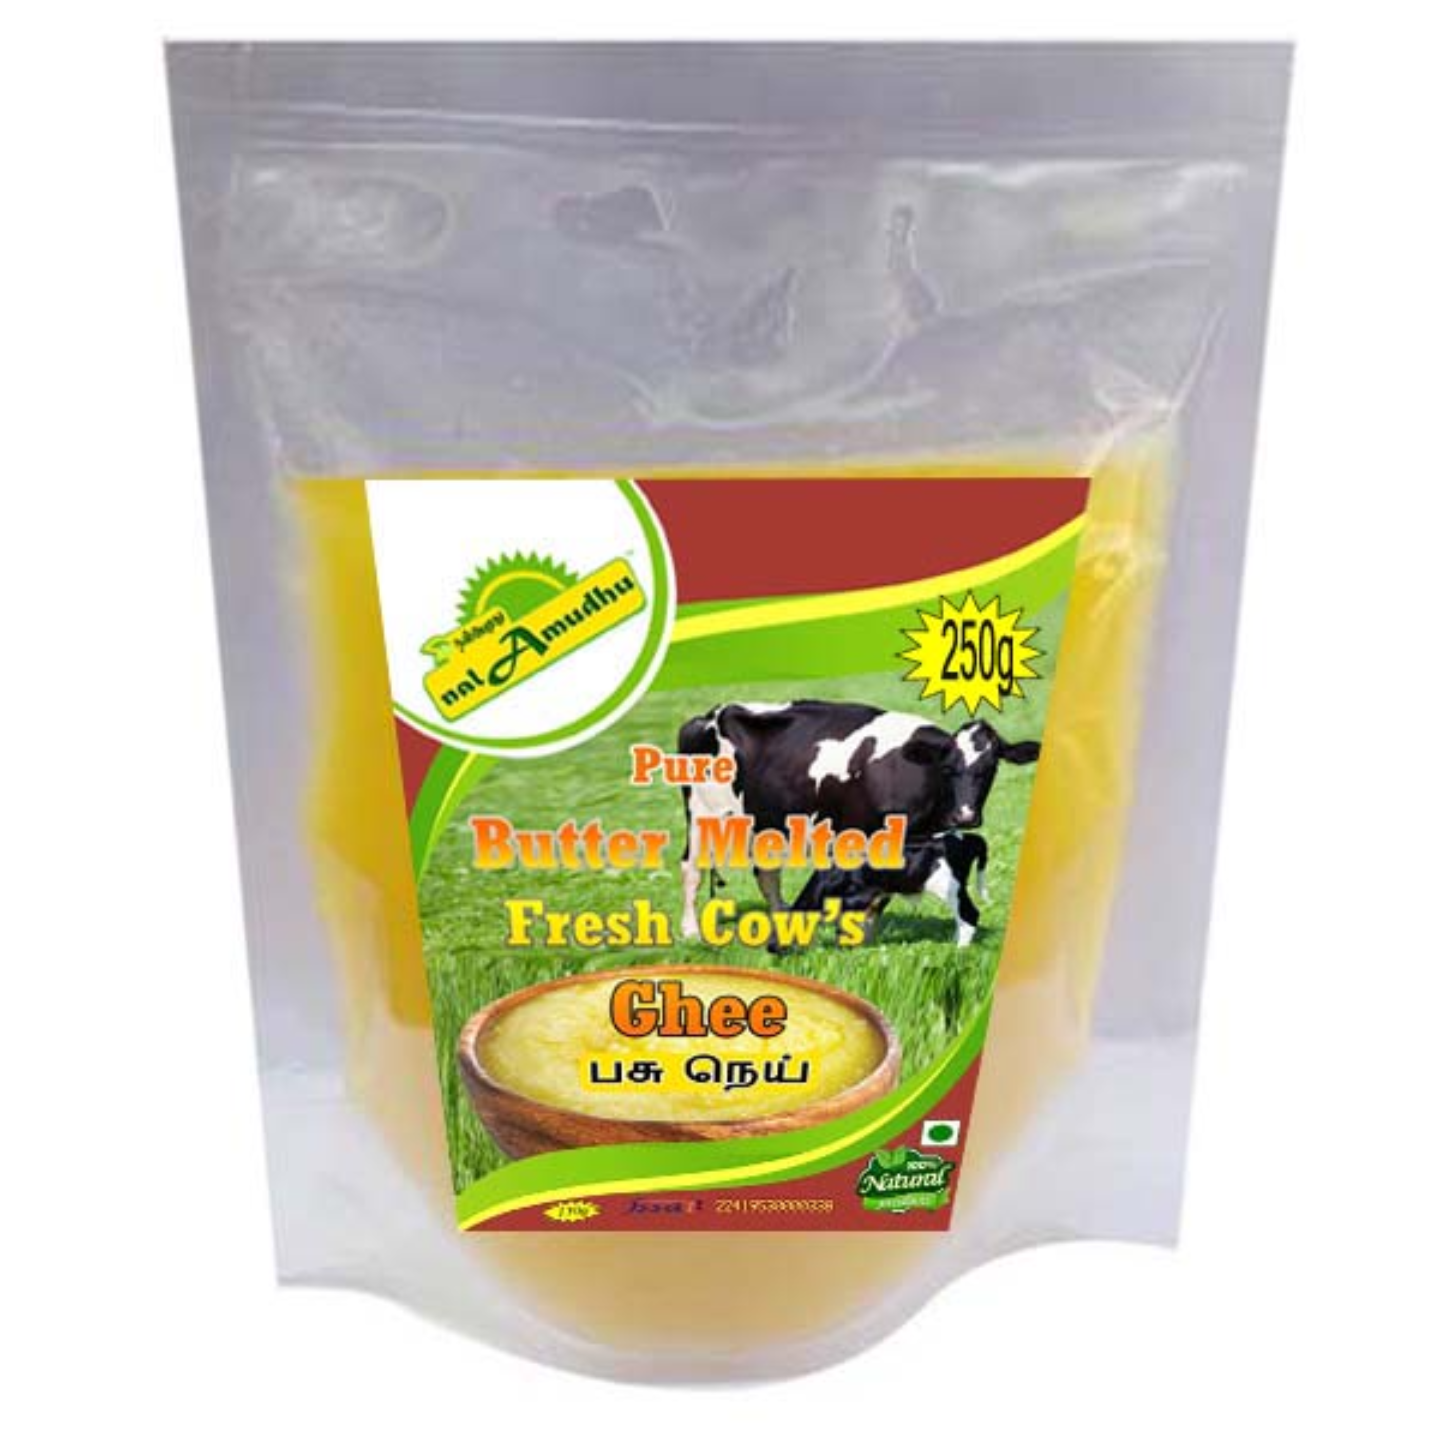 nalAmudhu Traditional Preparation Butter Melted Cows Ghee